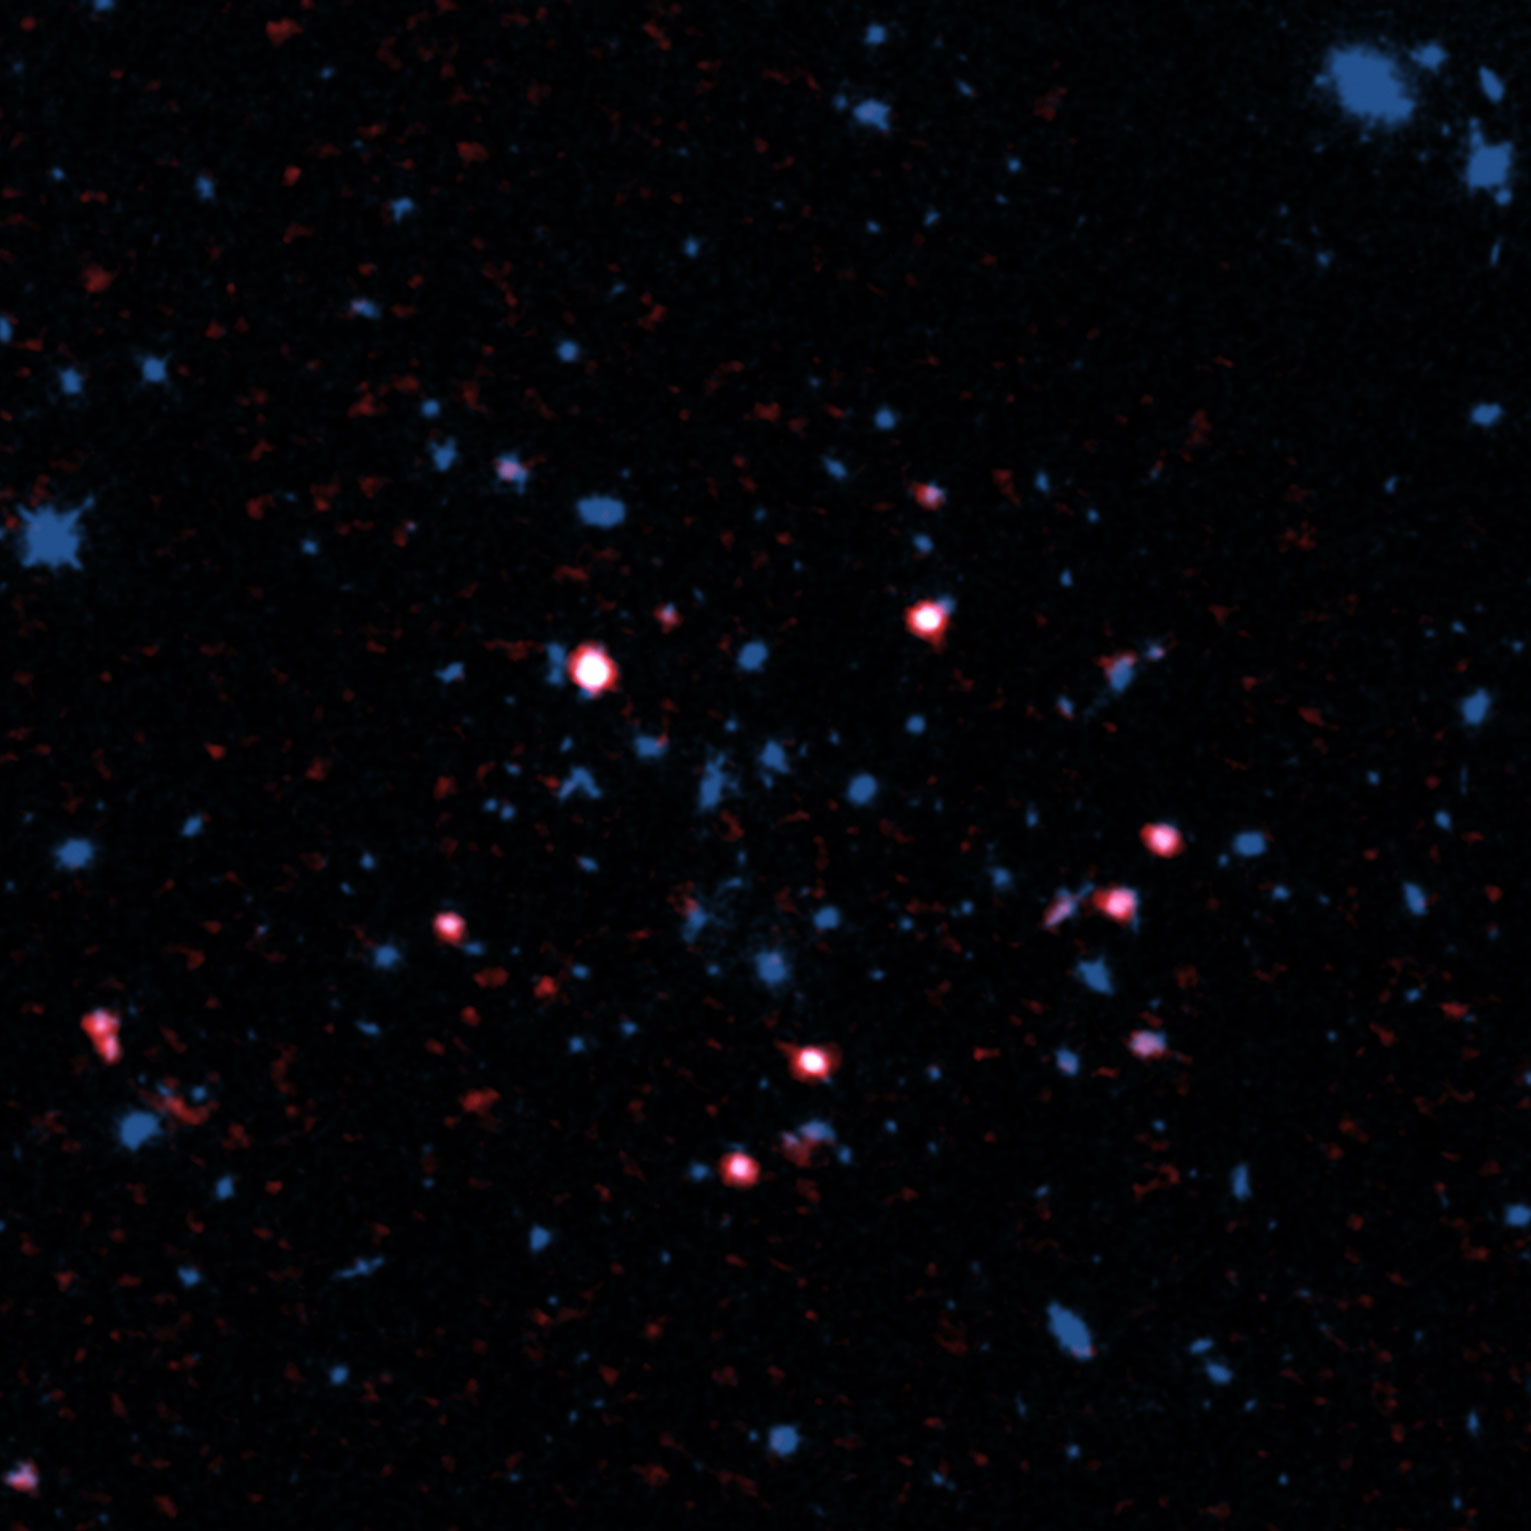 Galaxy cluster XMMXCS J2215.9–1738 observed with ALMA and the Hubble Space Telescope. Gas rich galaxies detected with ALMA are shown in red . Most gas rich galaxies are located in the outer part, not the center, of the galaxy cluster. アルマ望遠鏡とハッブル宇宙望遠鏡で観測した、94億光年かなたの銀河団XMMXCS J2215.9–1738。アルマ望遠鏡が見つけたガスに富む銀河を赤色で表示しています。これらの銀河が、銀河団の中心部には存在しないことがわかります。 Credit: ALMA (ESO/NAOJ/NRAO), Hayashi et al., the NASA/ESA Hubble Space Telescope